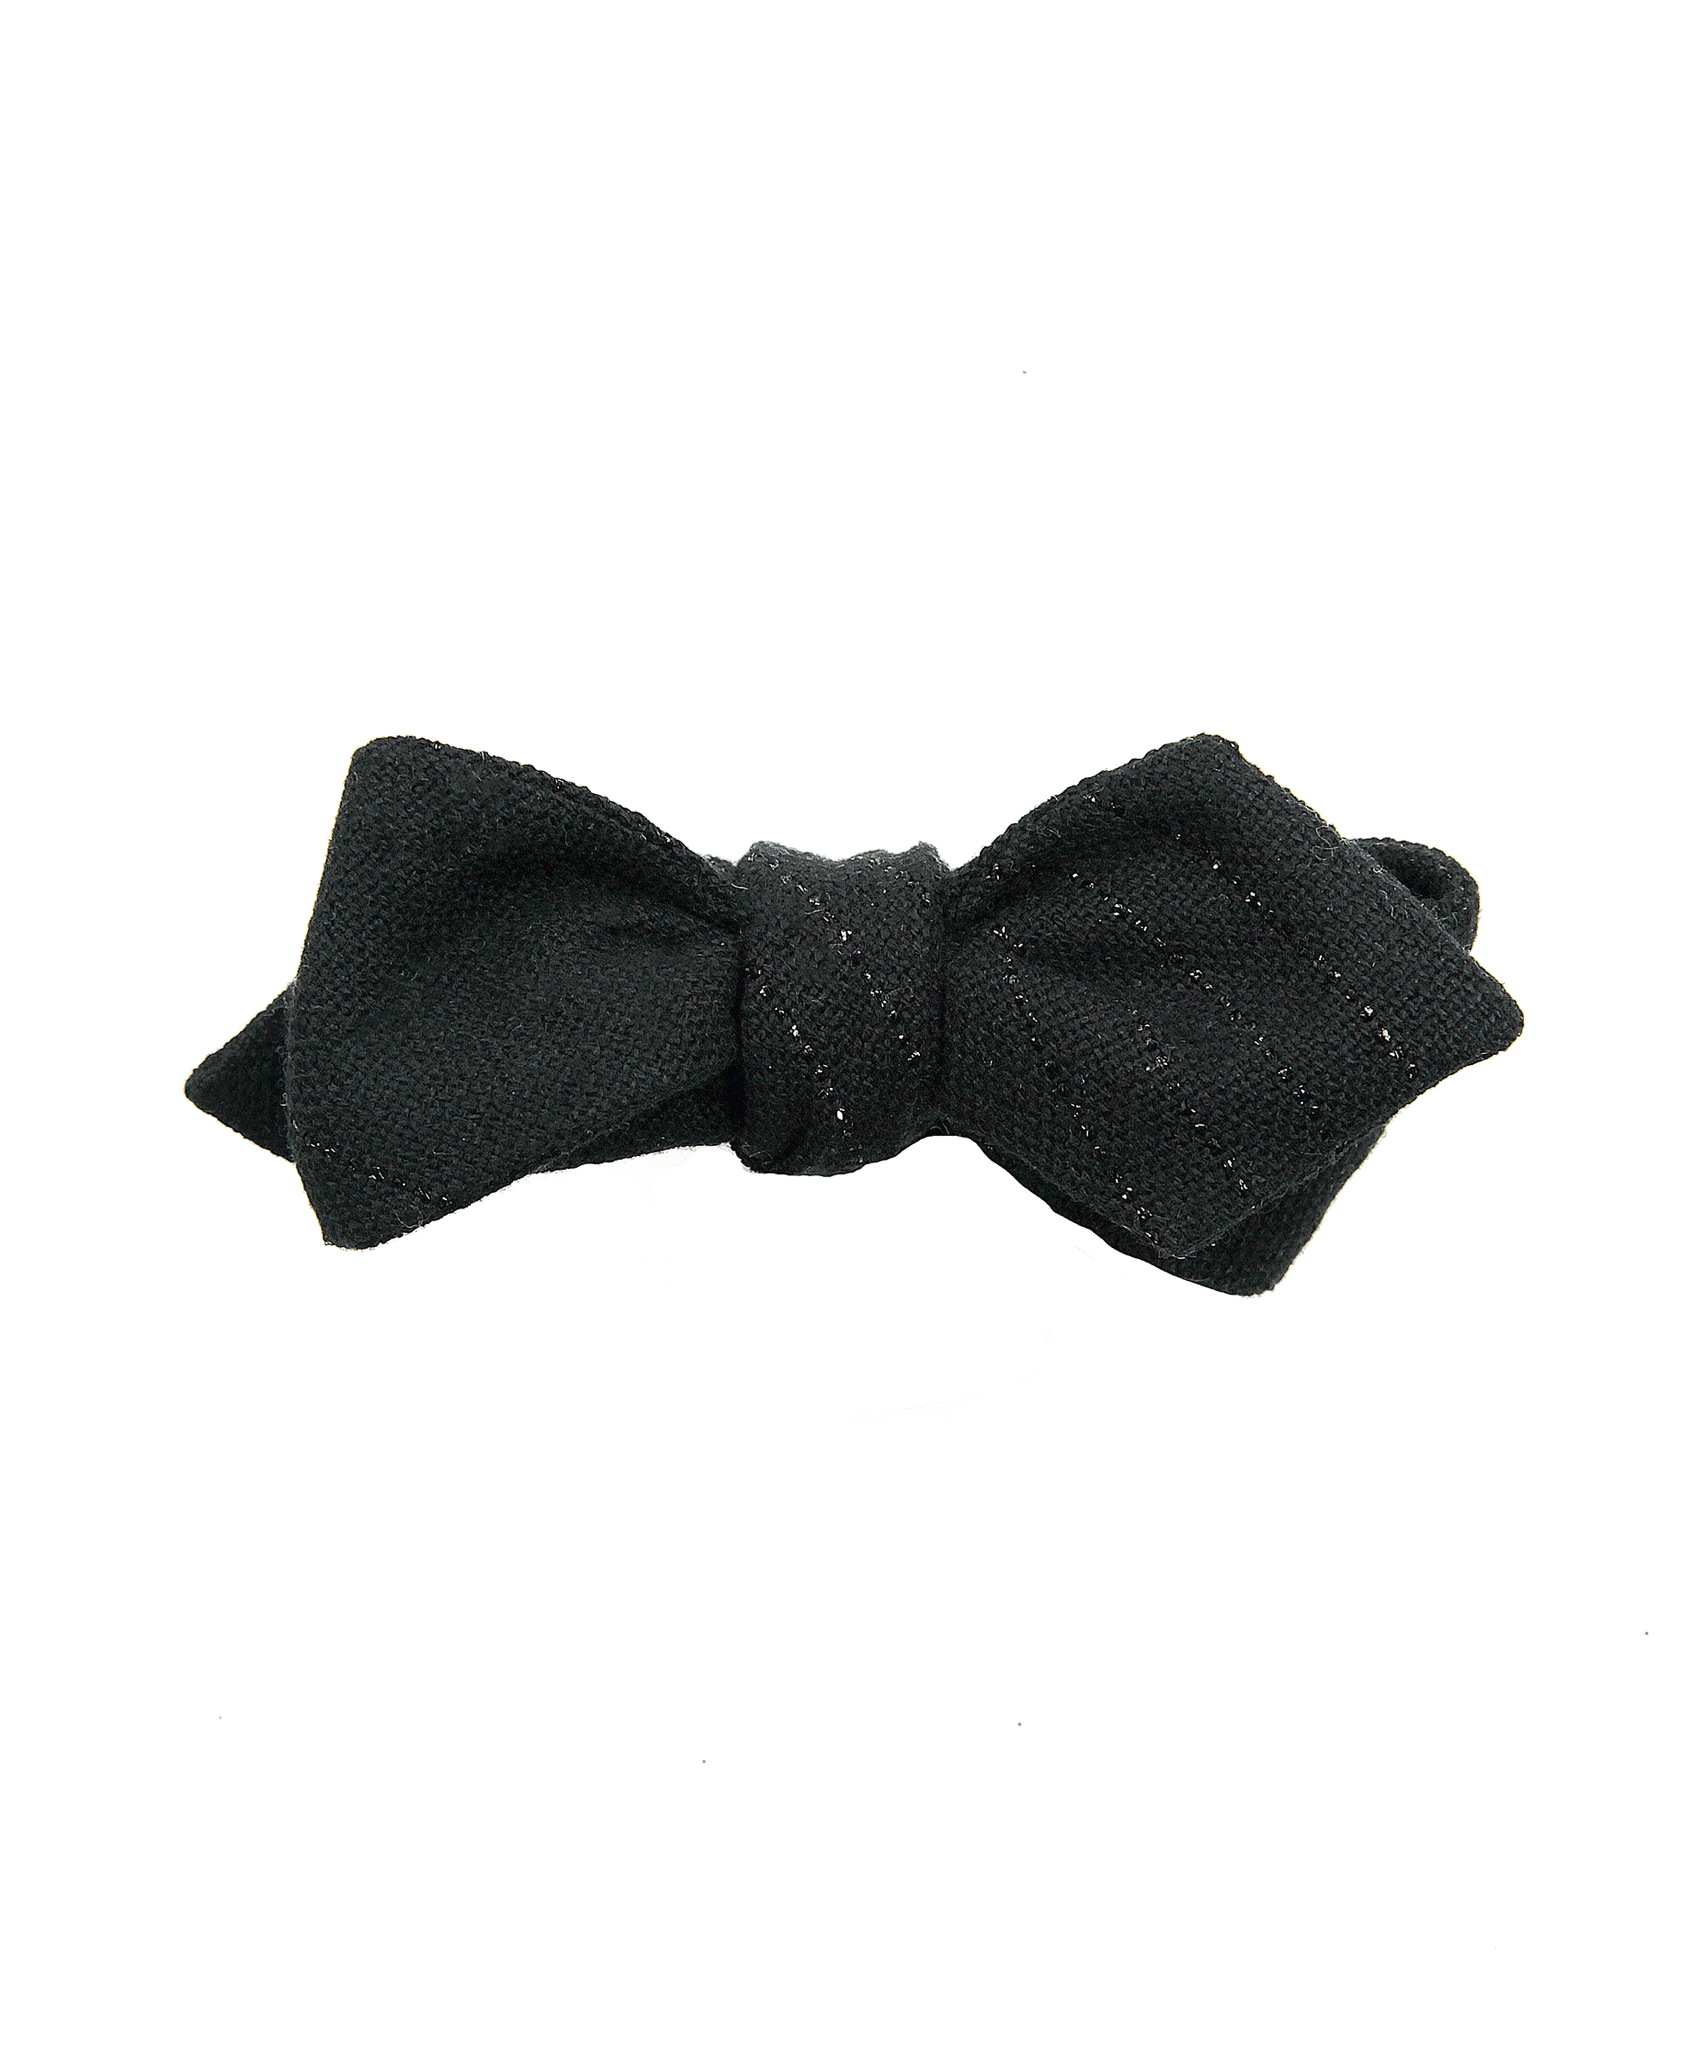 The Glitter Stripe Bow Tie